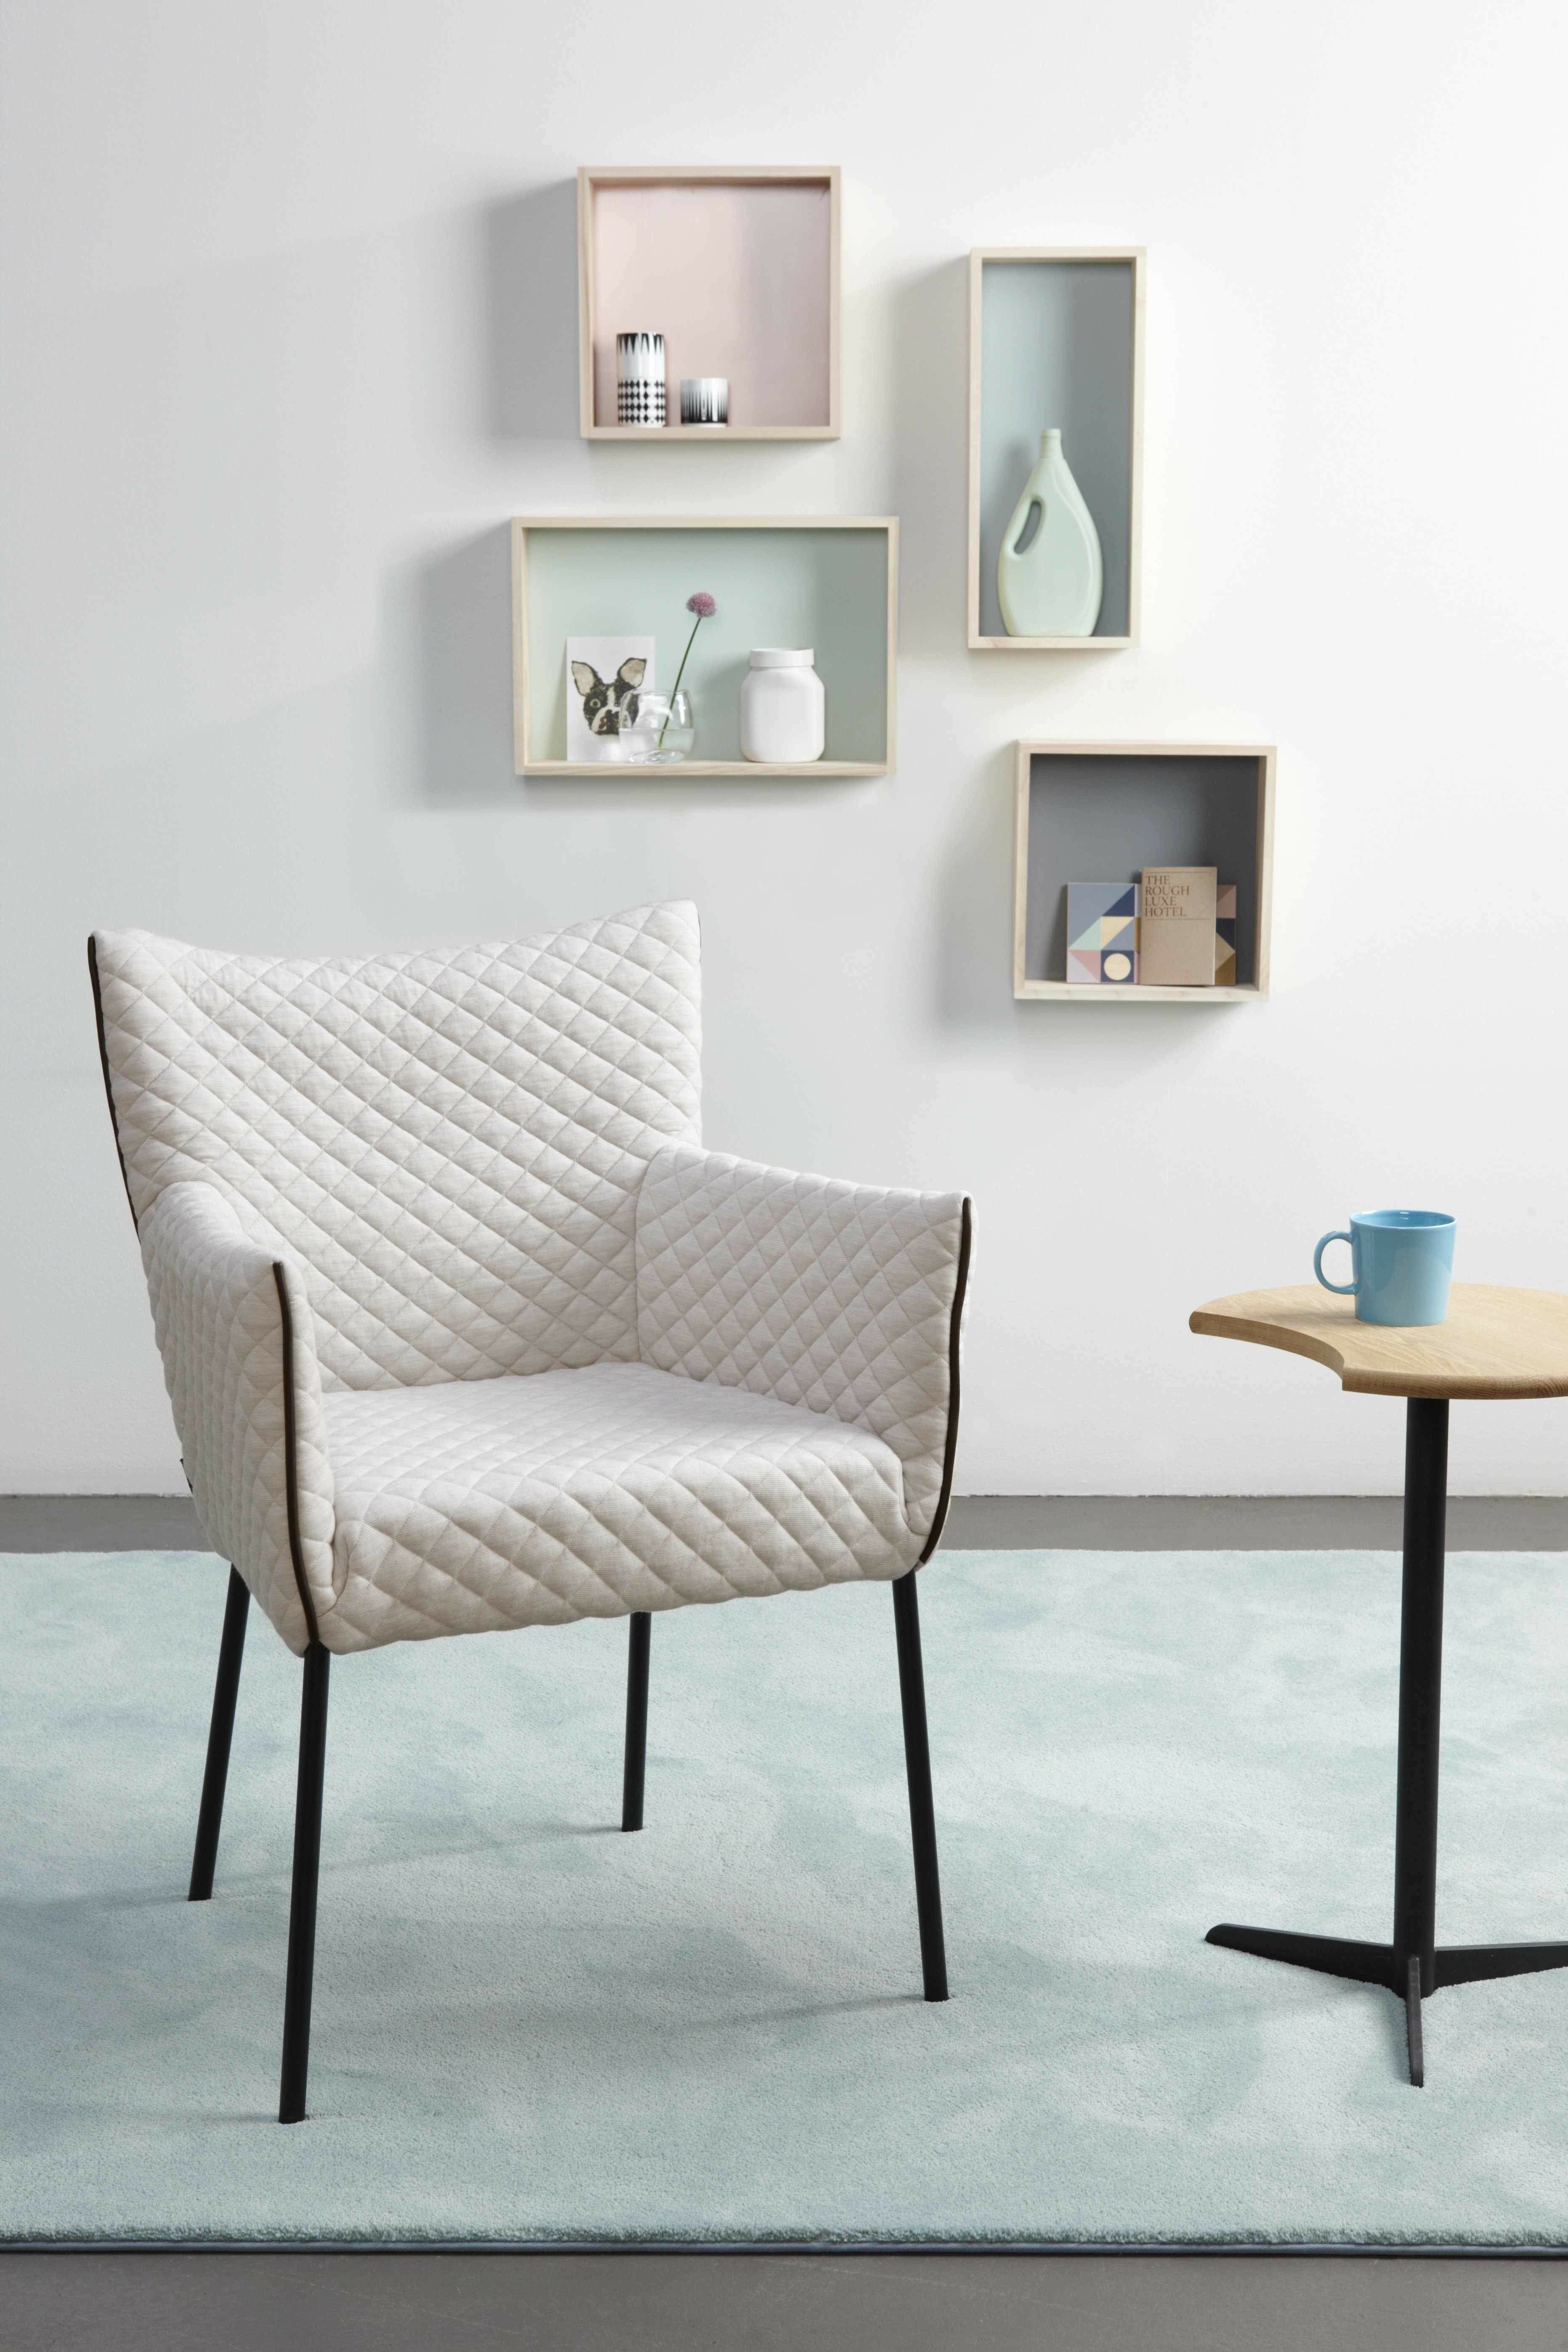 LABEL Dining Chair Mali Designed By Gerard Van Den Berg - Dining chairs in living room